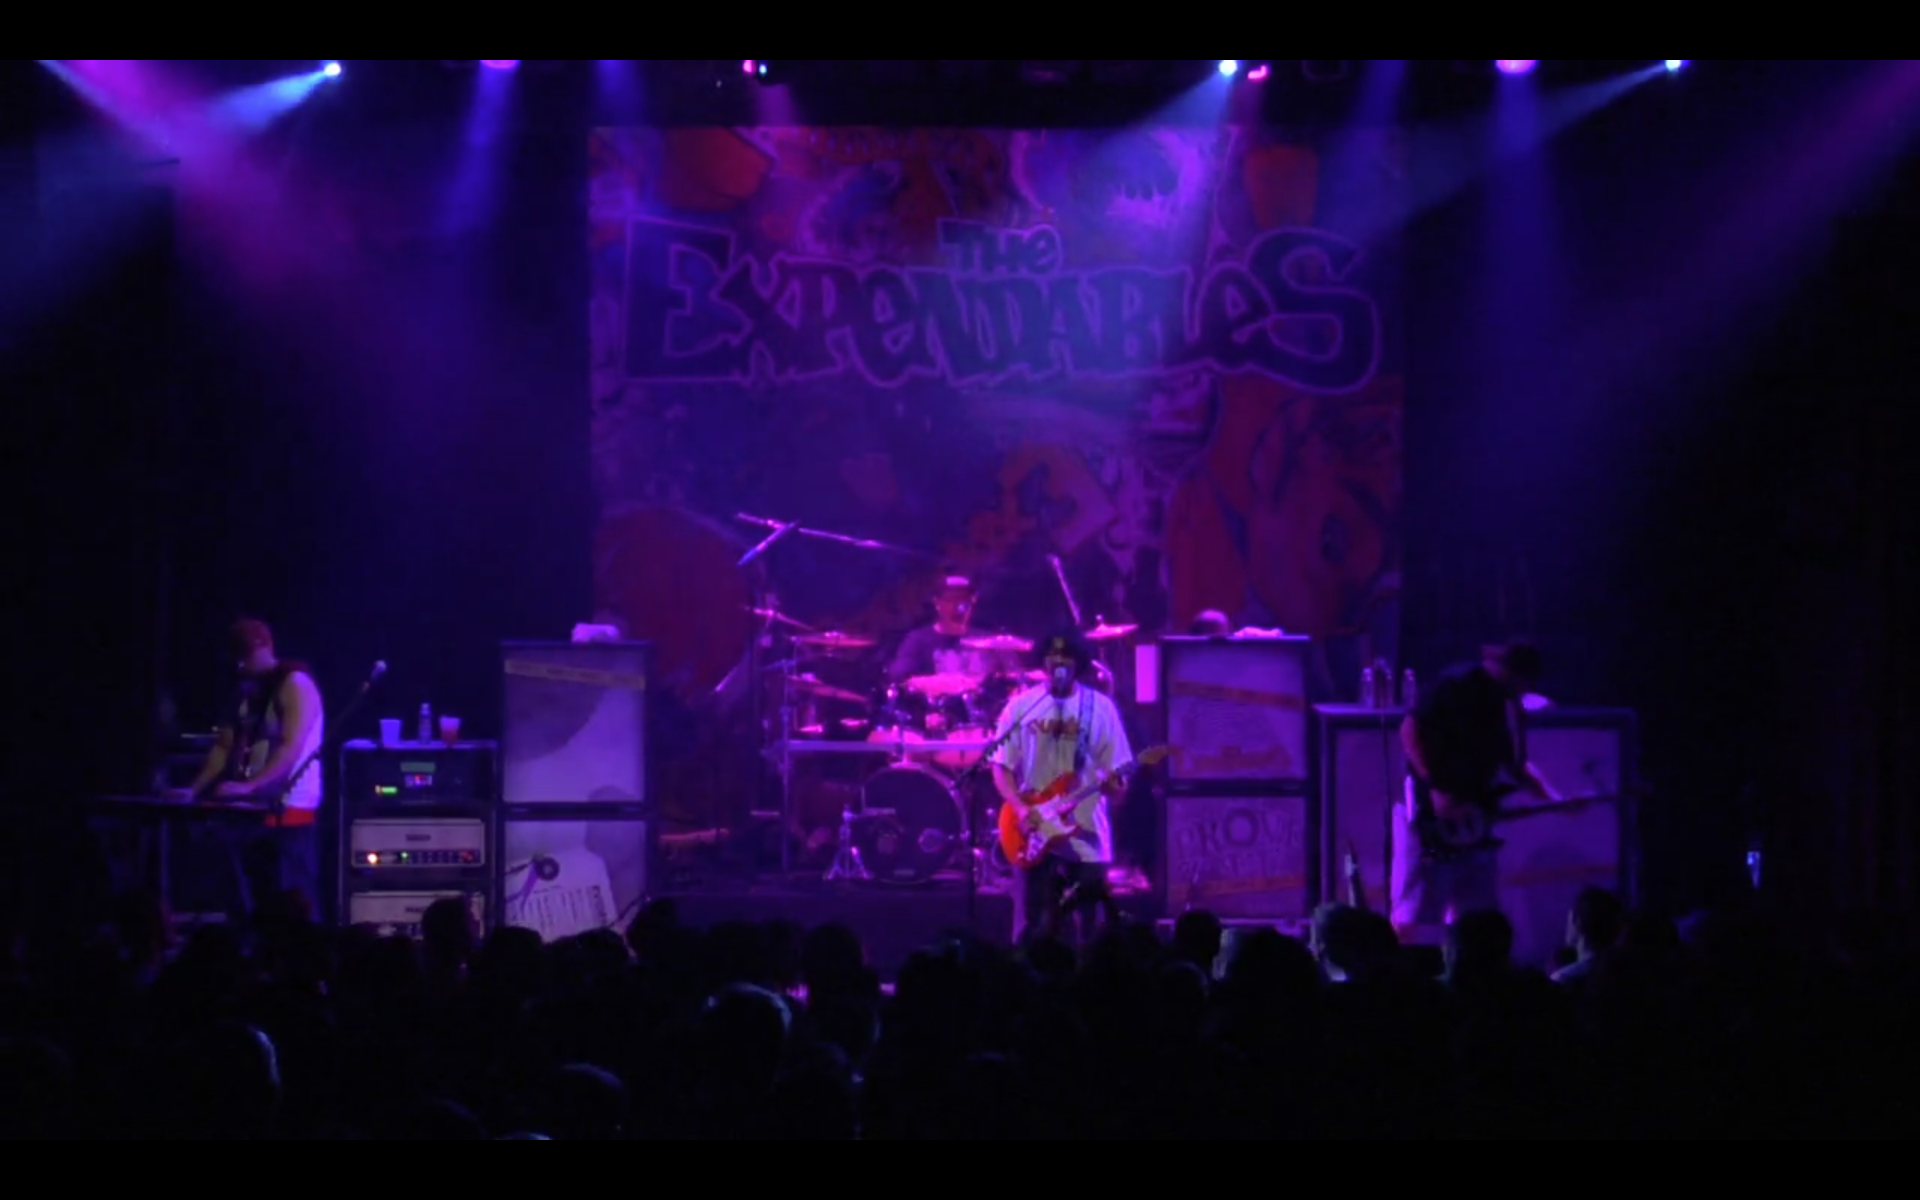 The Expendables in Concert